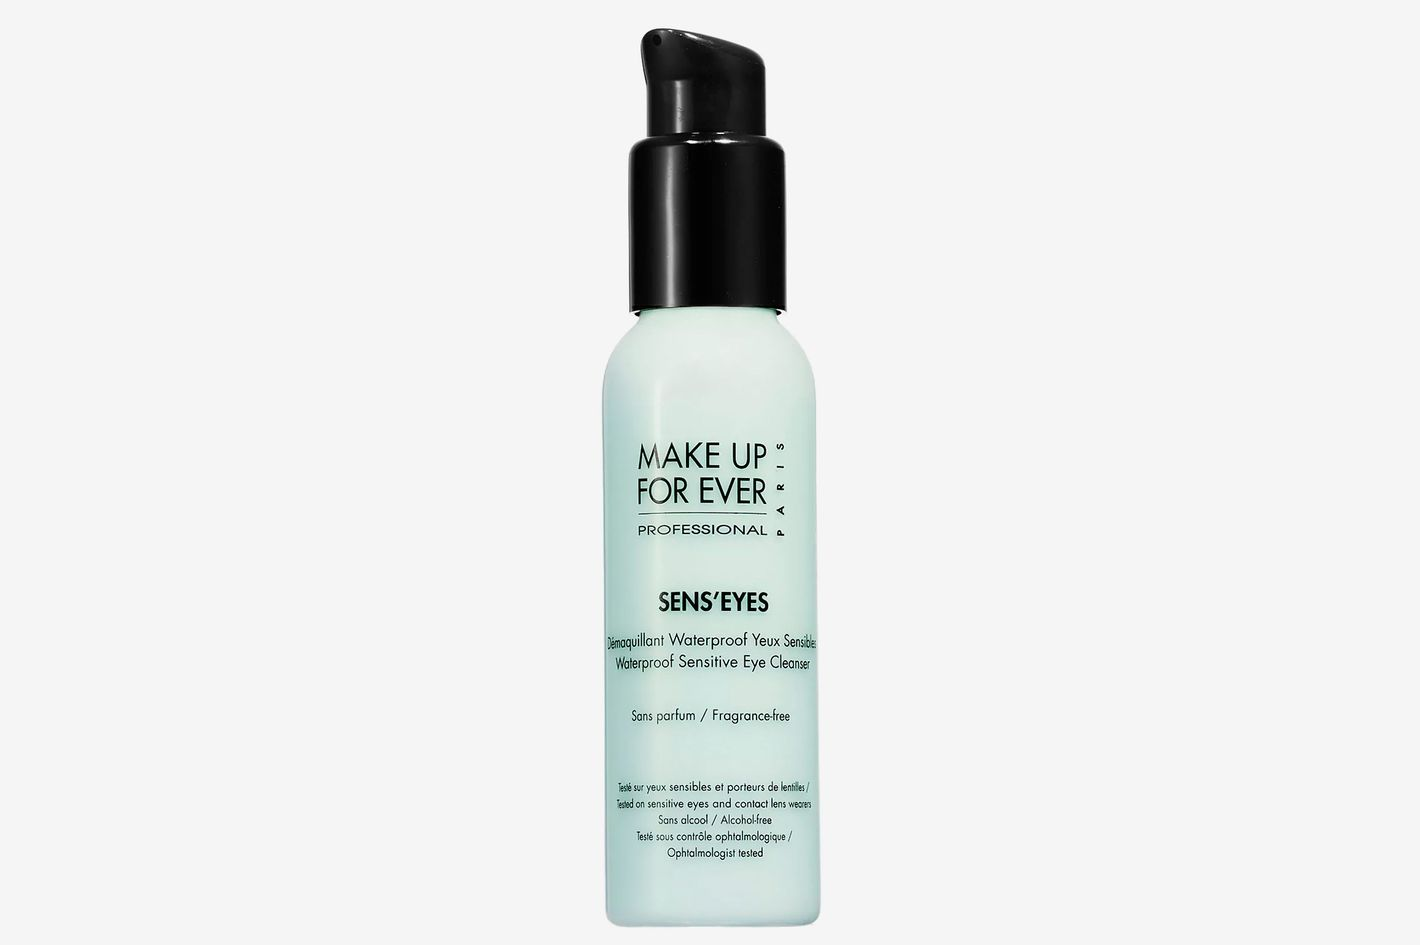 Make Up Forever Eye Makeup Remover